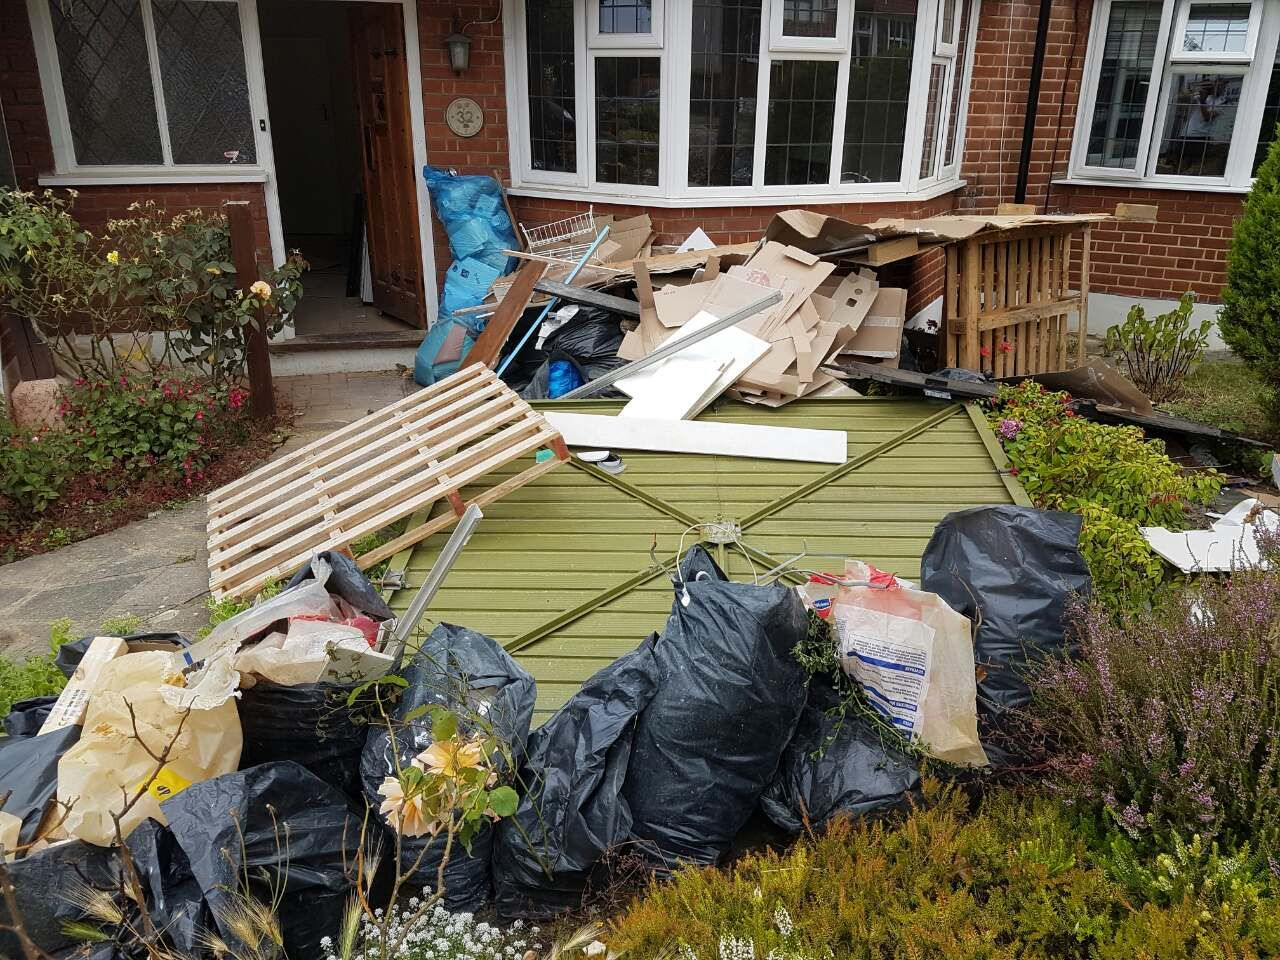 SW7 rubbish collection Kensington